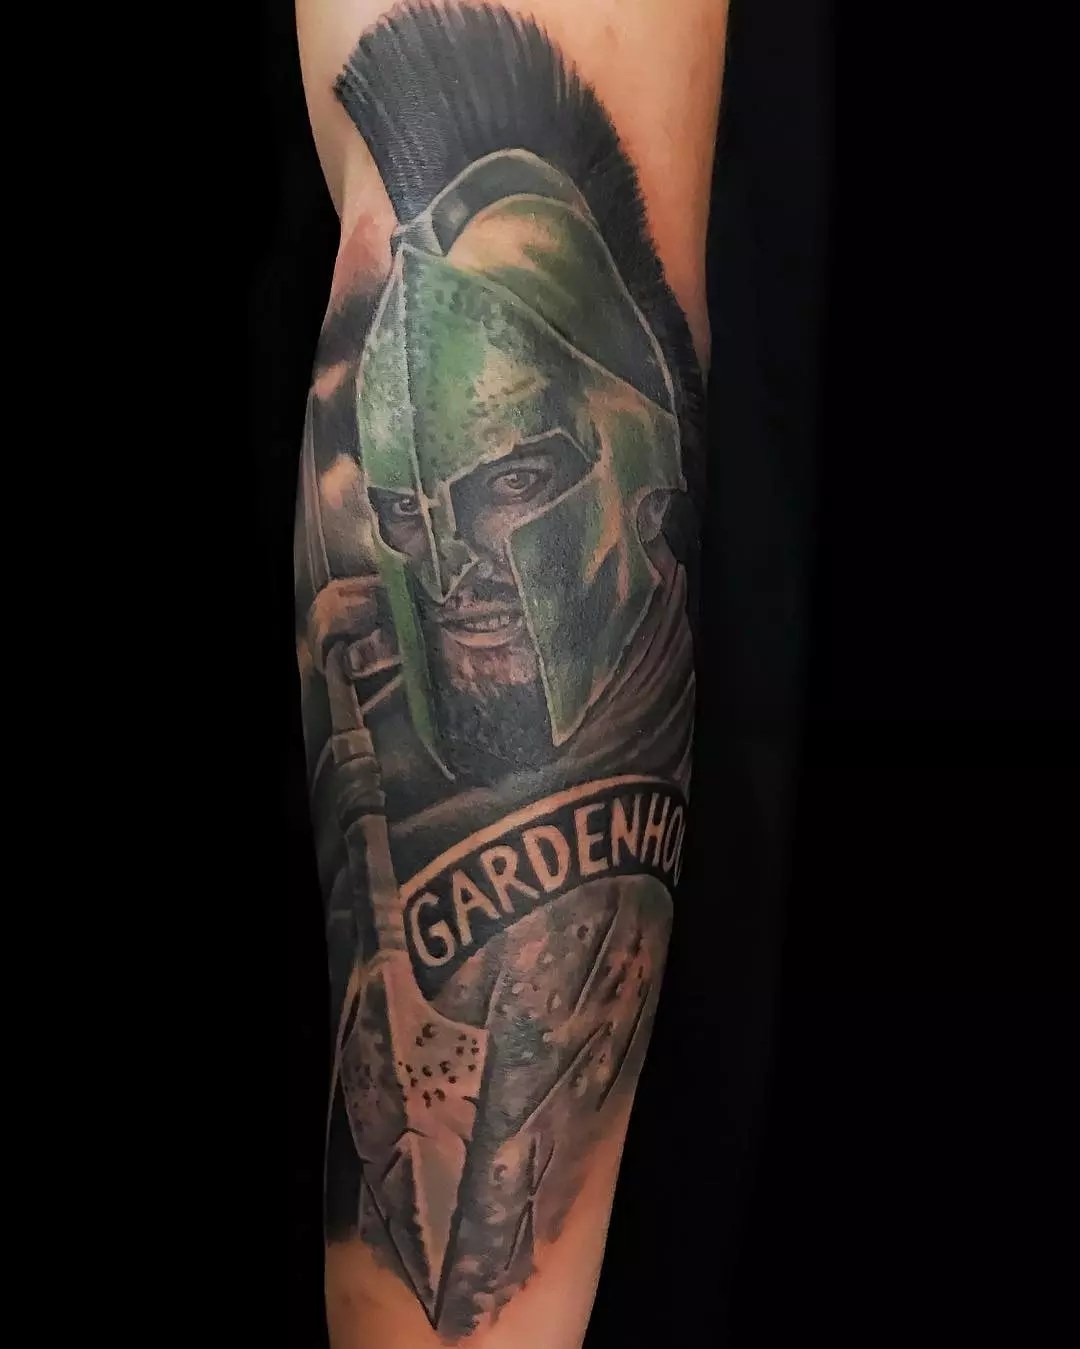 70 Legendary Spartan Tattoo Ideas – Discover The Meaning Behind These Power Images of 52 by Alyssa